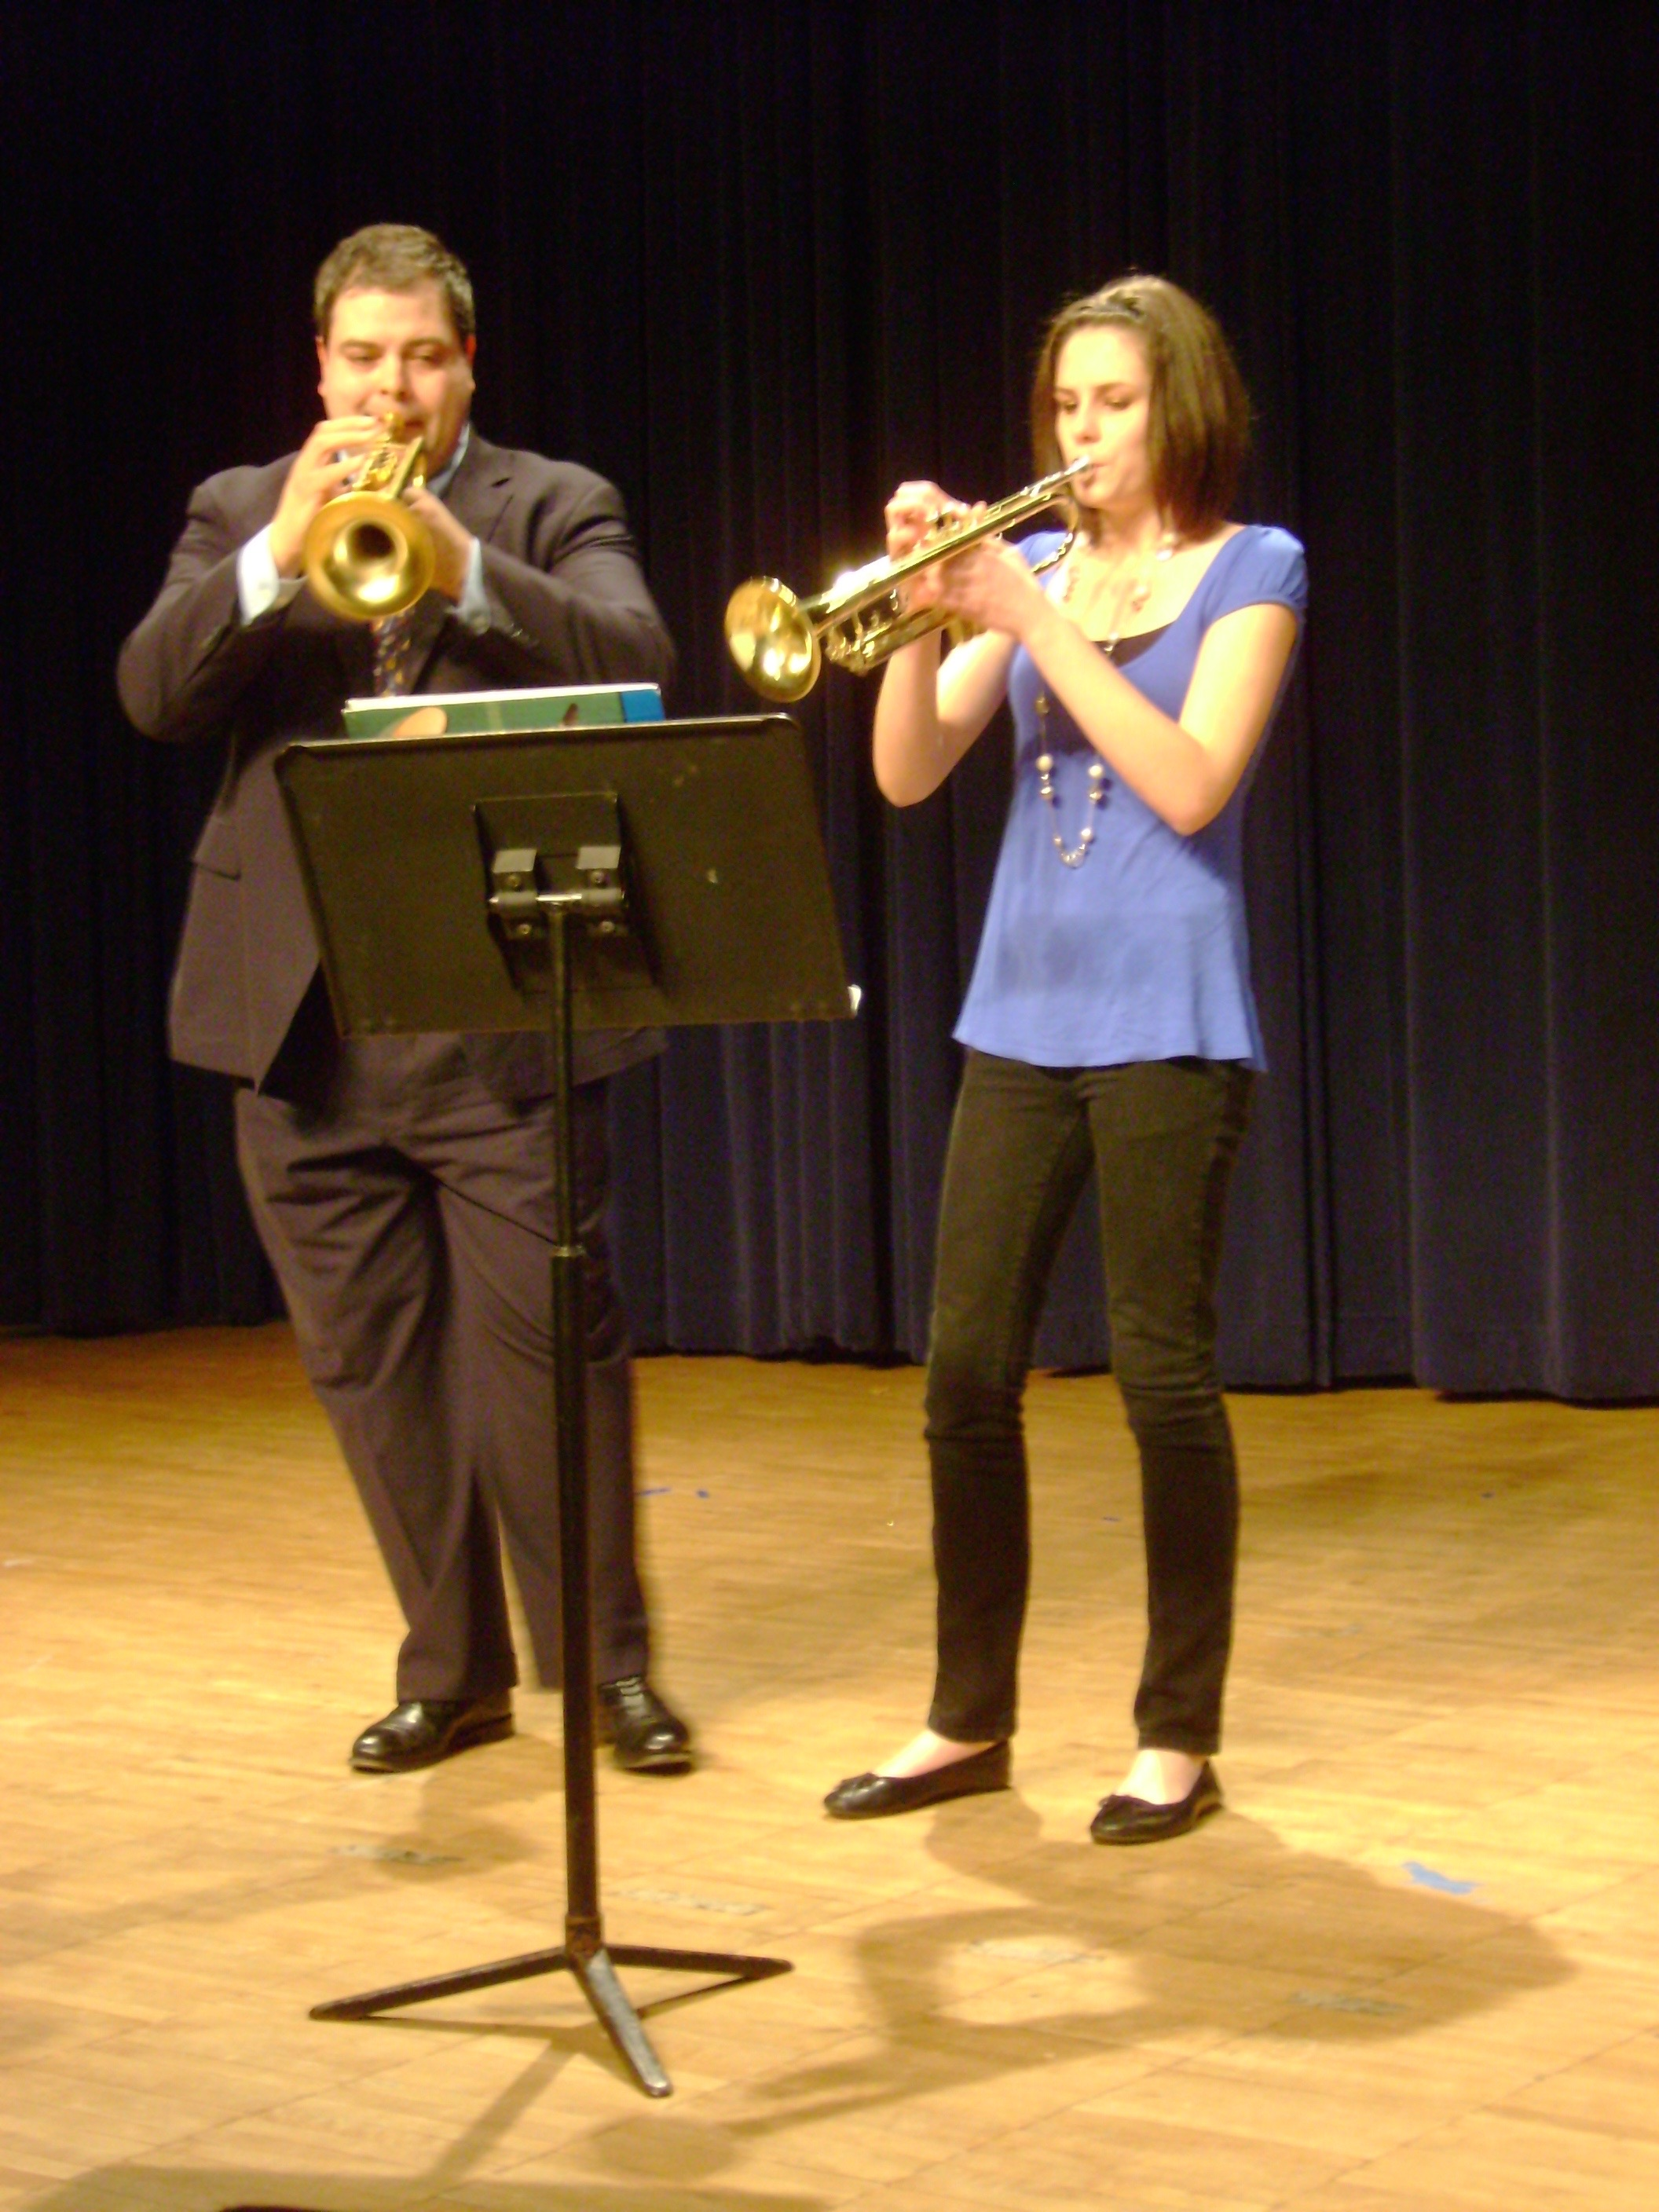 Performing together - James performing with a student during a trumpet studio recital